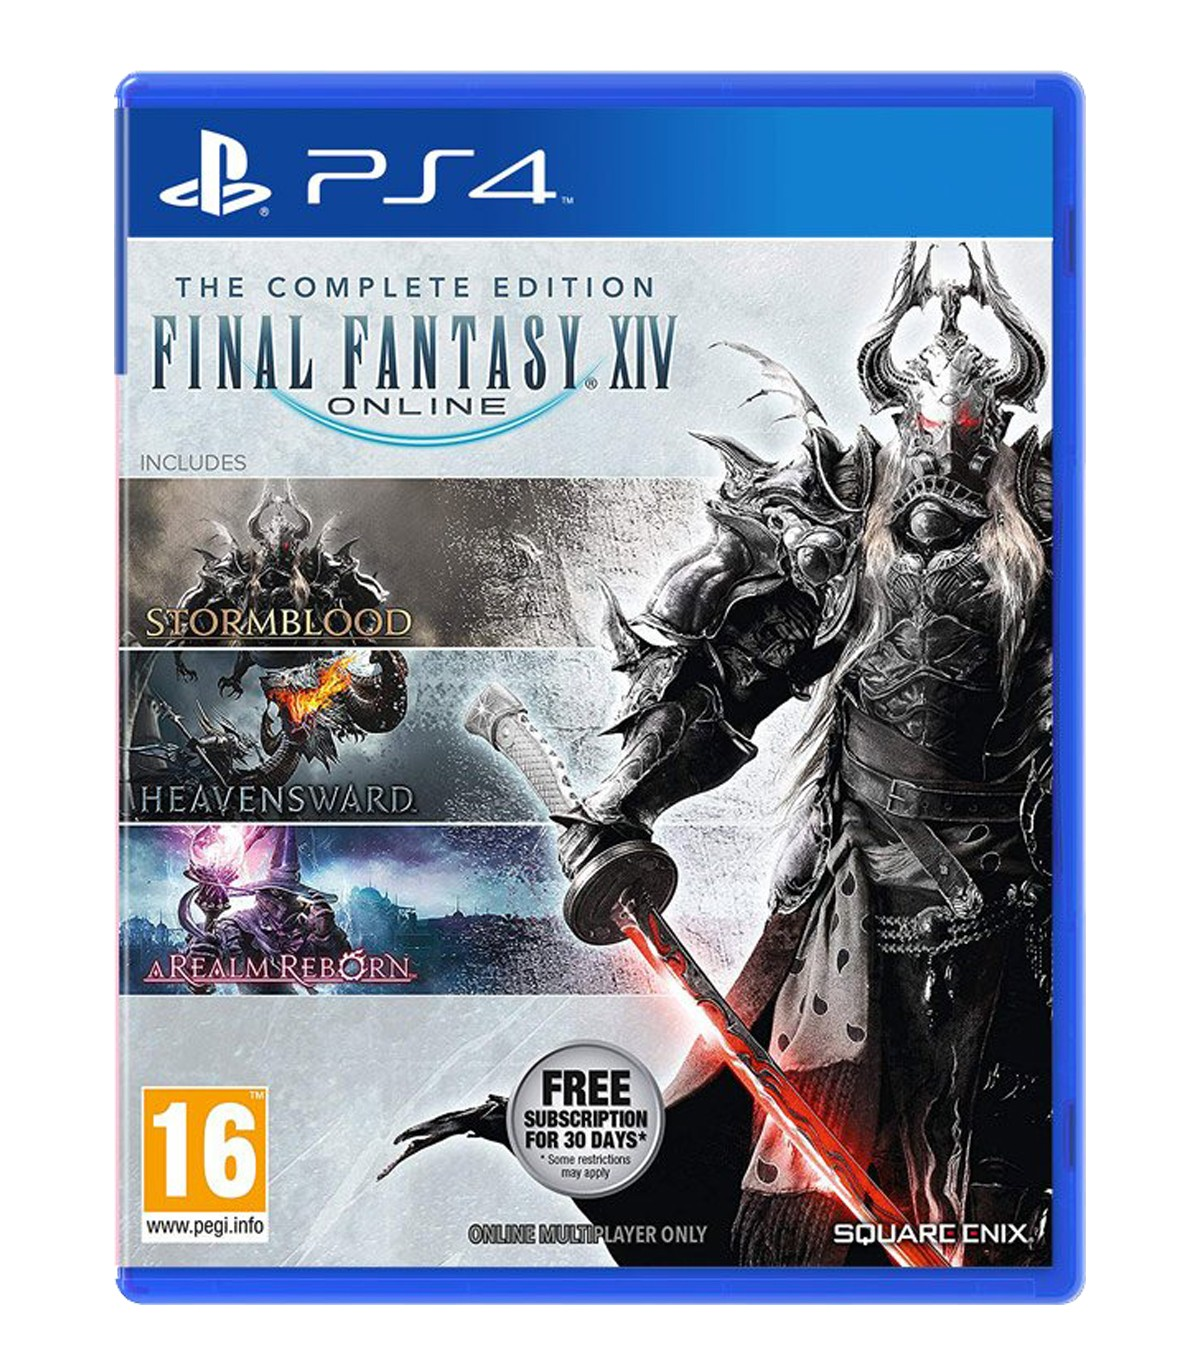 بازی Final Fantasy XIV Online Complete Edition - پلی استیشن 4